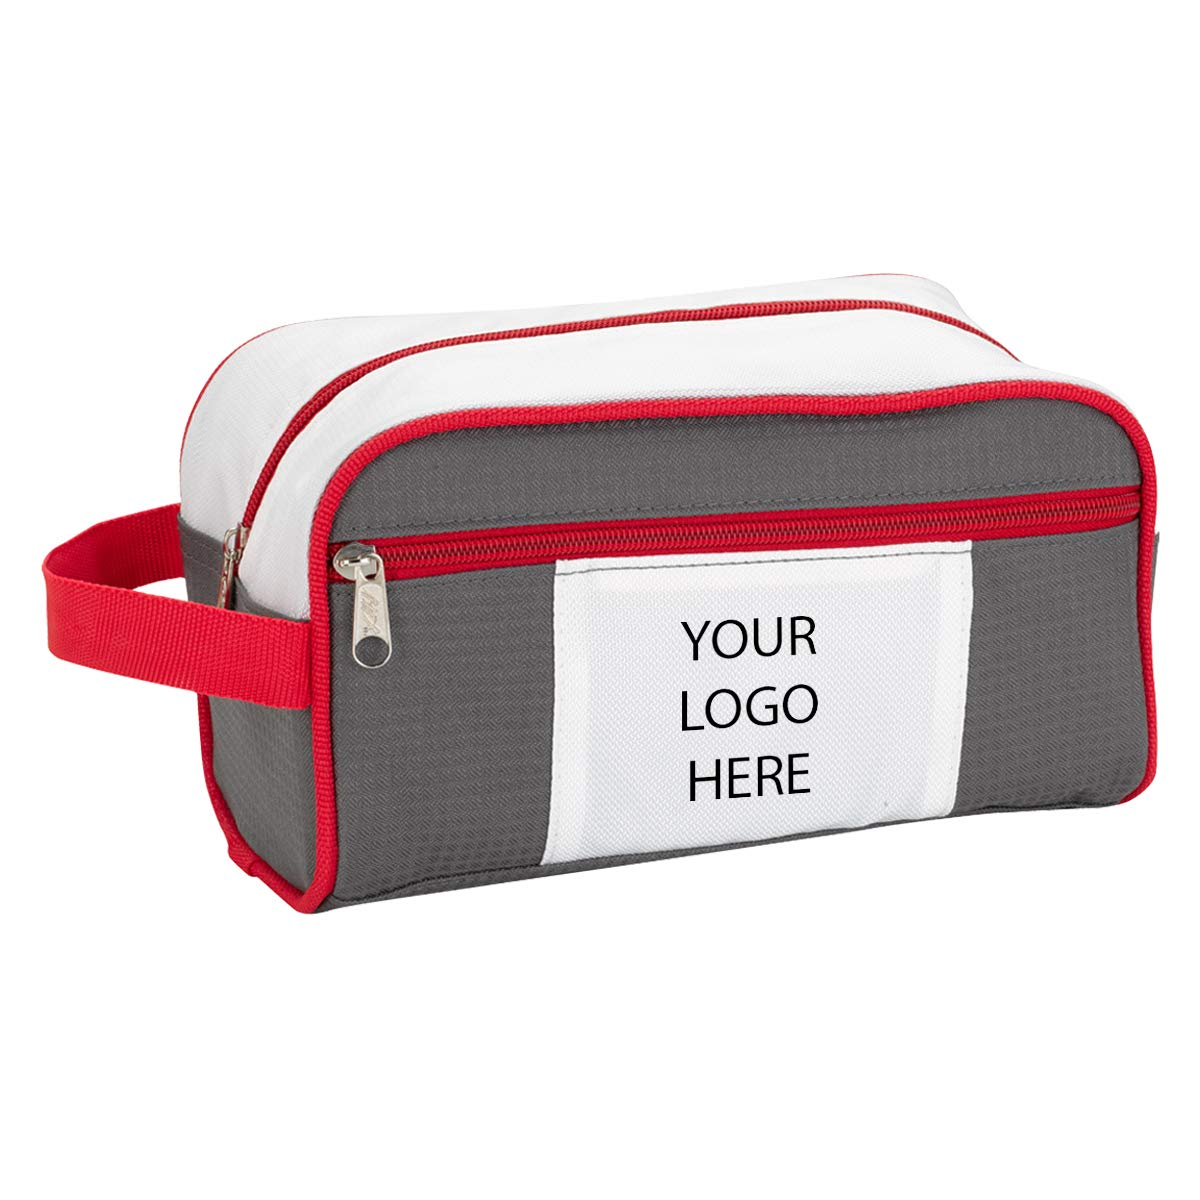 Weston Deluxe Toiletry Bag - 100 Qty - Custom Product Imprinted & Personalized Bulk with Your Customized Logo by Promo Direct